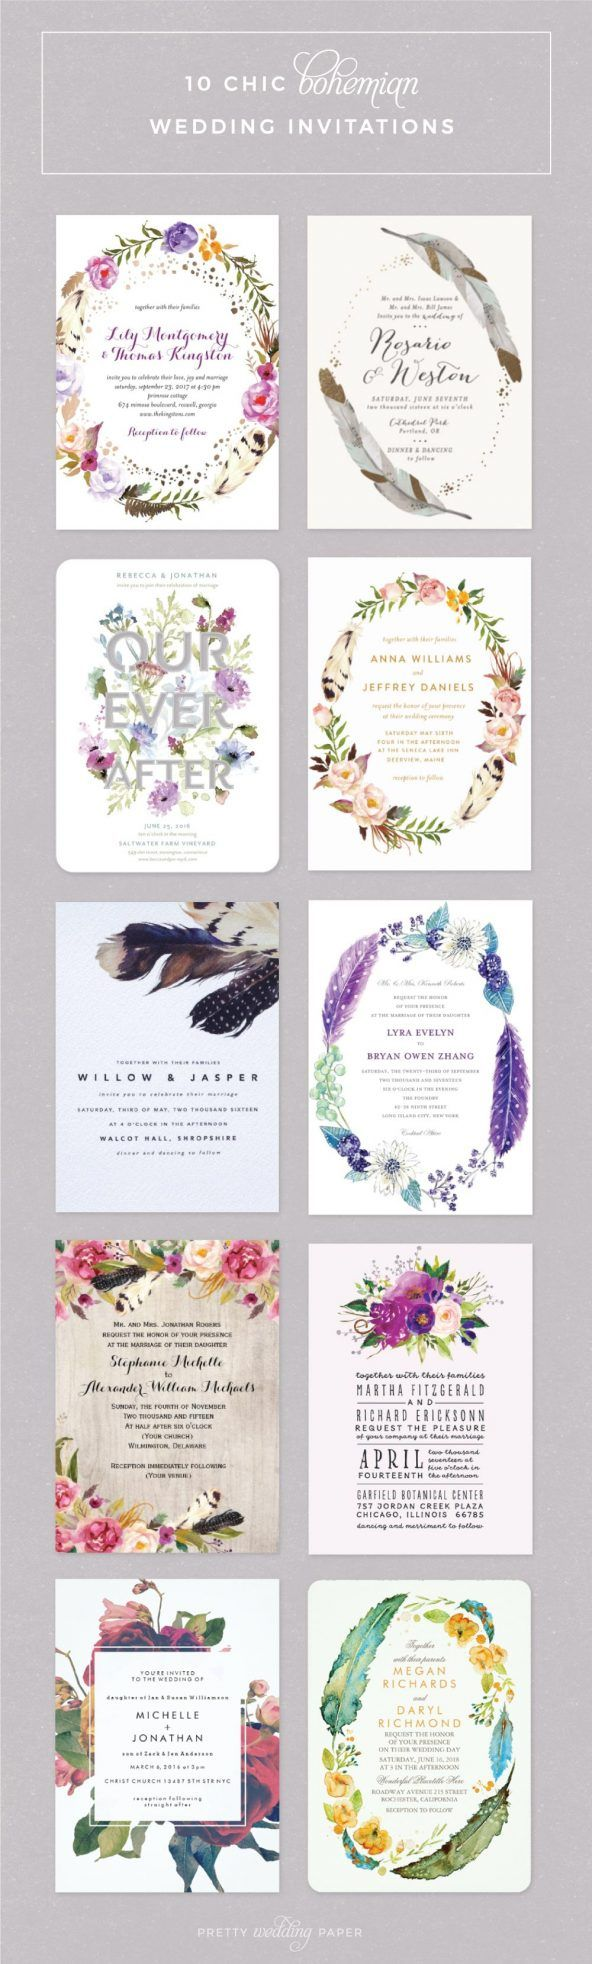 10 Rustic Bohemian / Boho Wedding Invitations. Some designs feature a floral wreath, some have feathers, and some pretty flowers. These invites are perfect for shabby chic and modern boho inspired weddings.